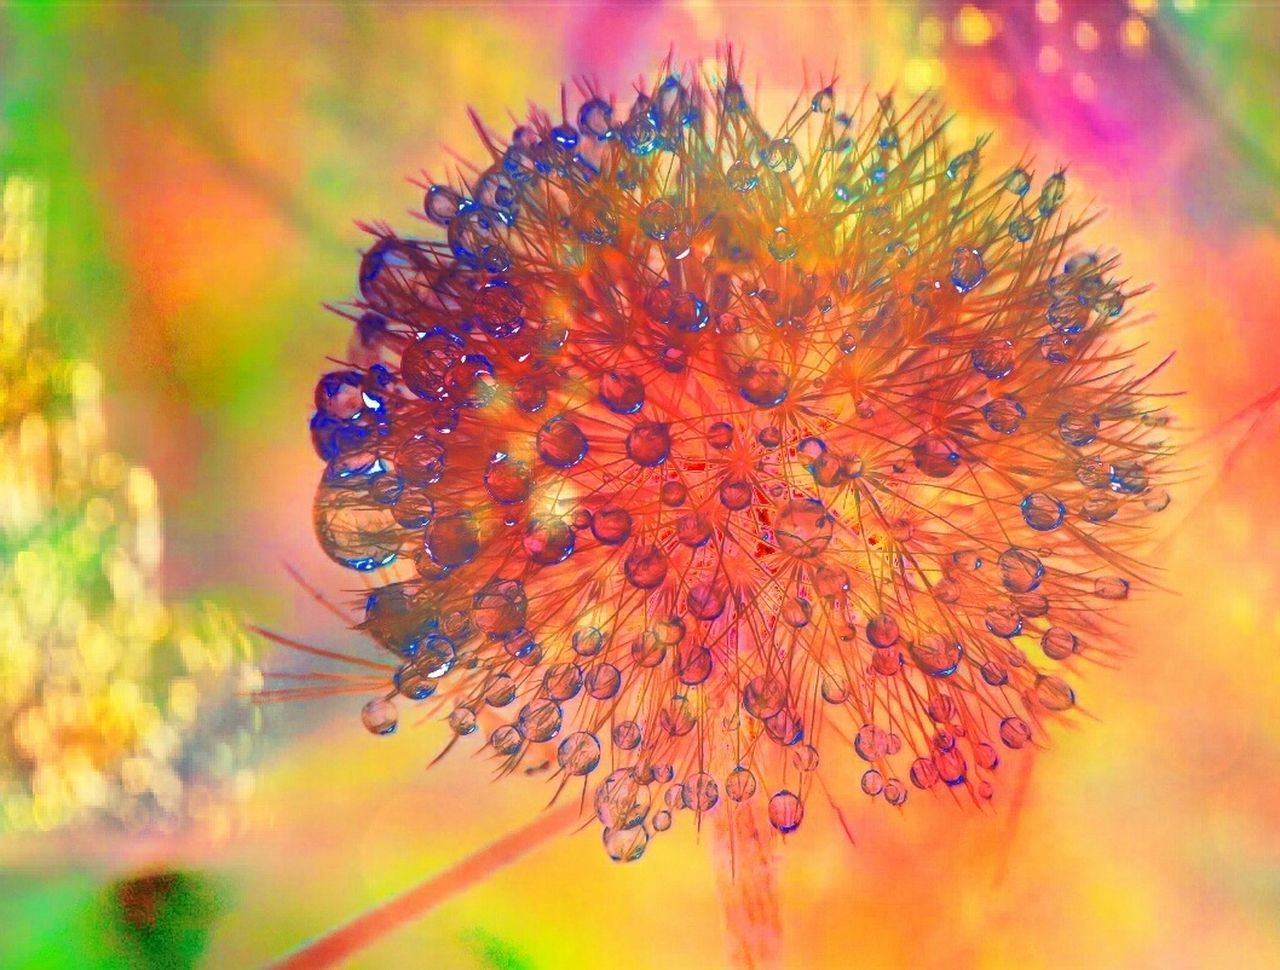 Nature Beauty In Nature Outdoors Multi Colored Abstract Macro Photography Nature Photography Waterdrops Dandelion Collection Cold Days Naturelover Colorful